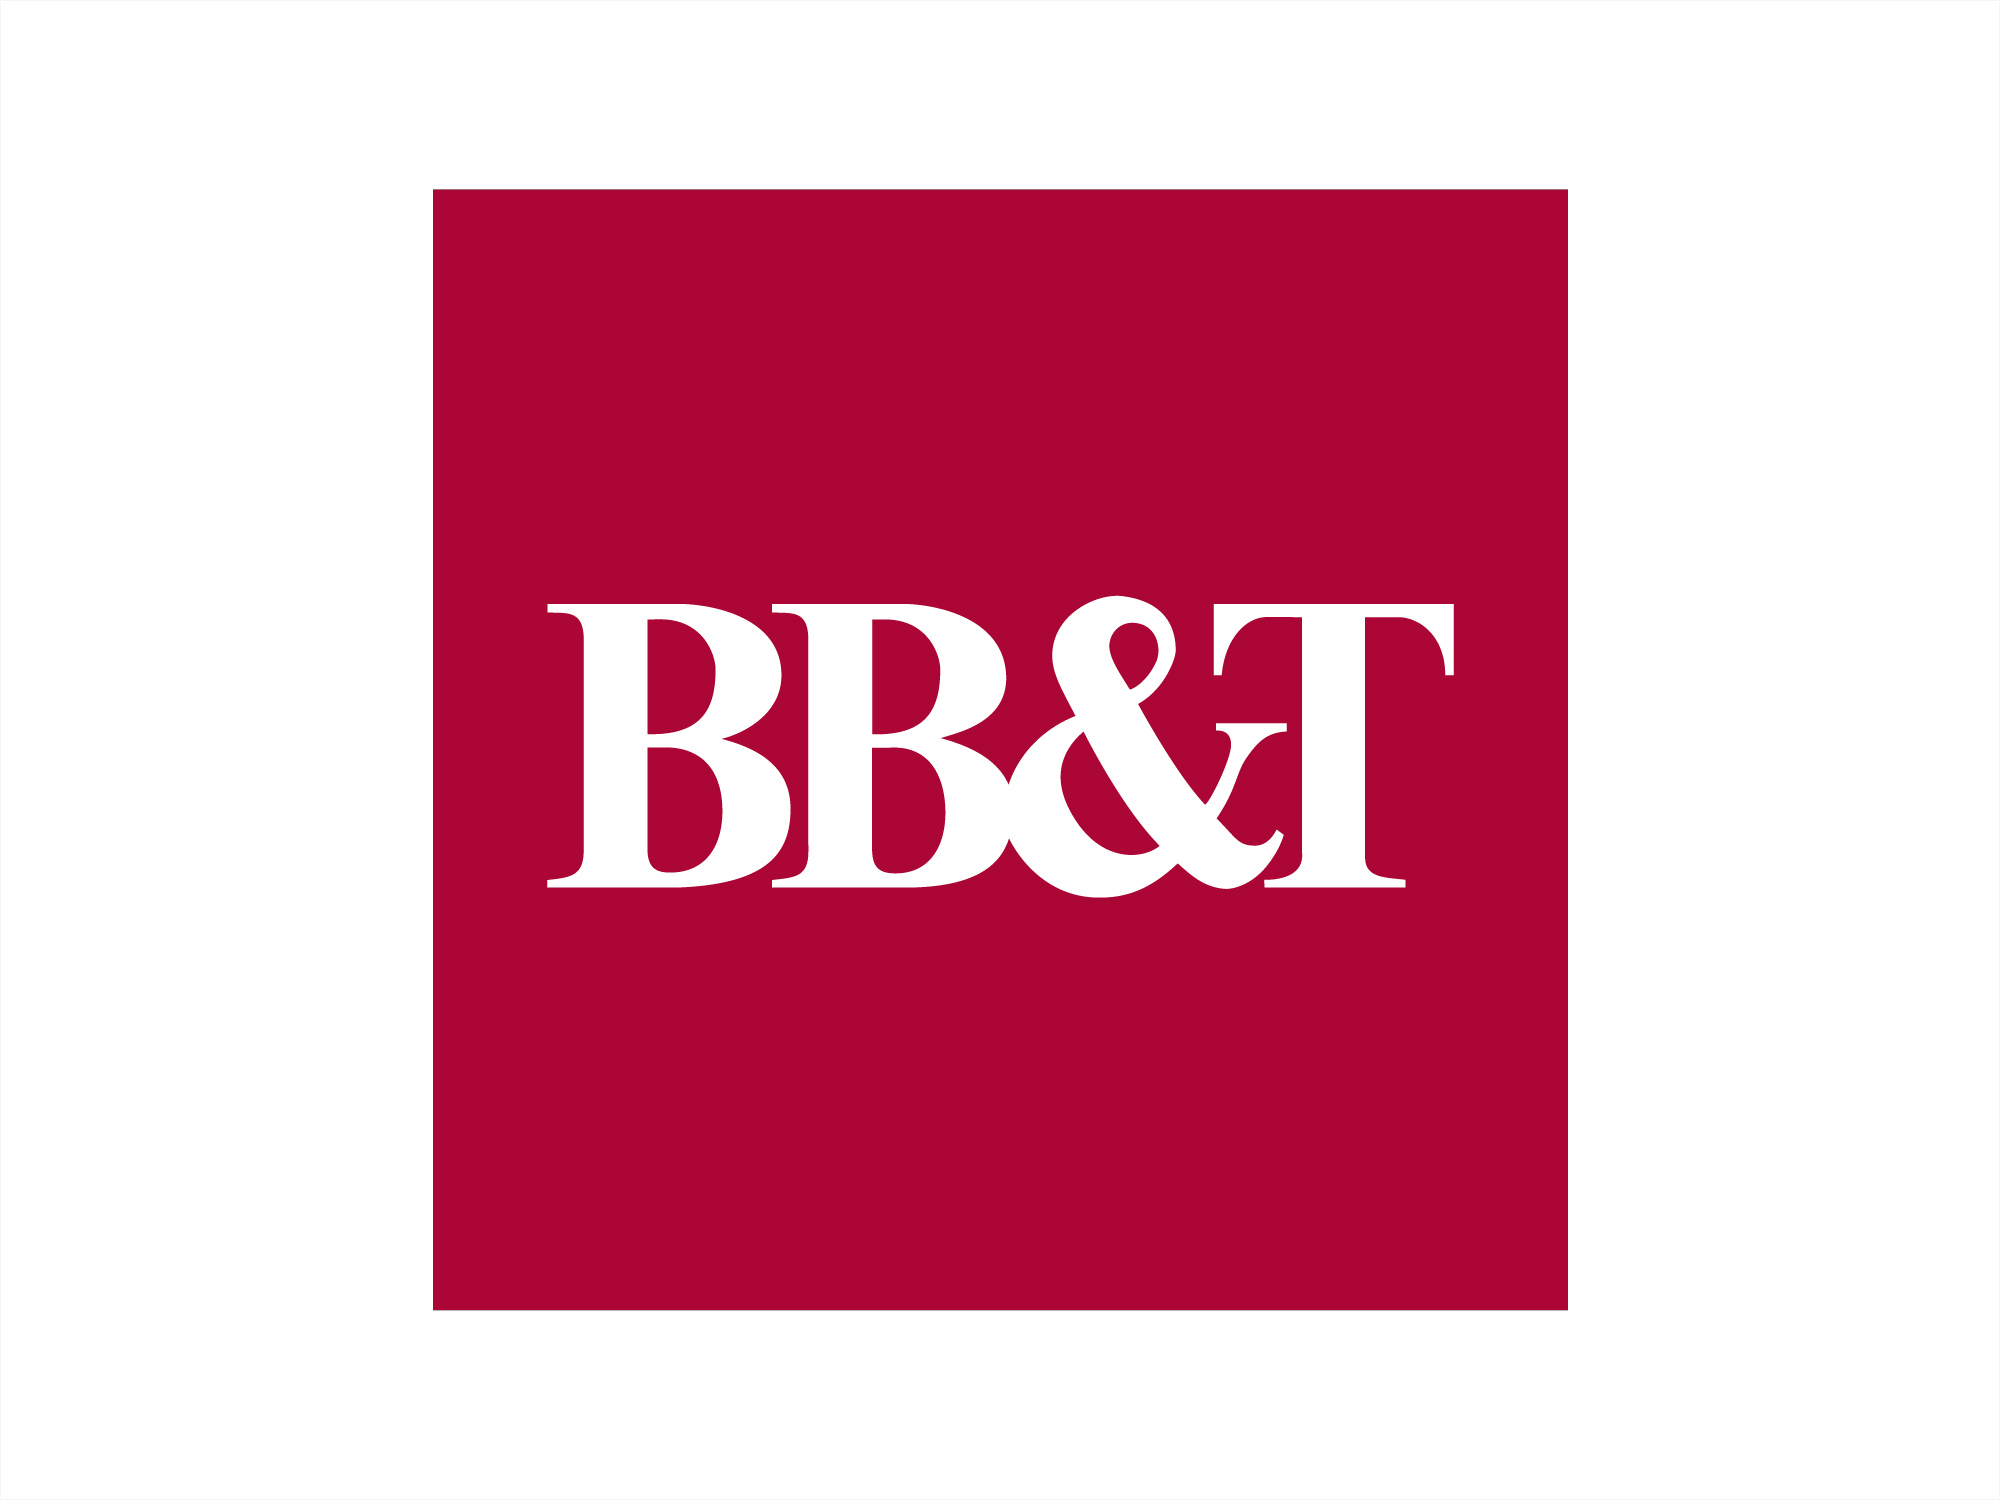 BB&T cites 'technical issue' in outage affecting customers